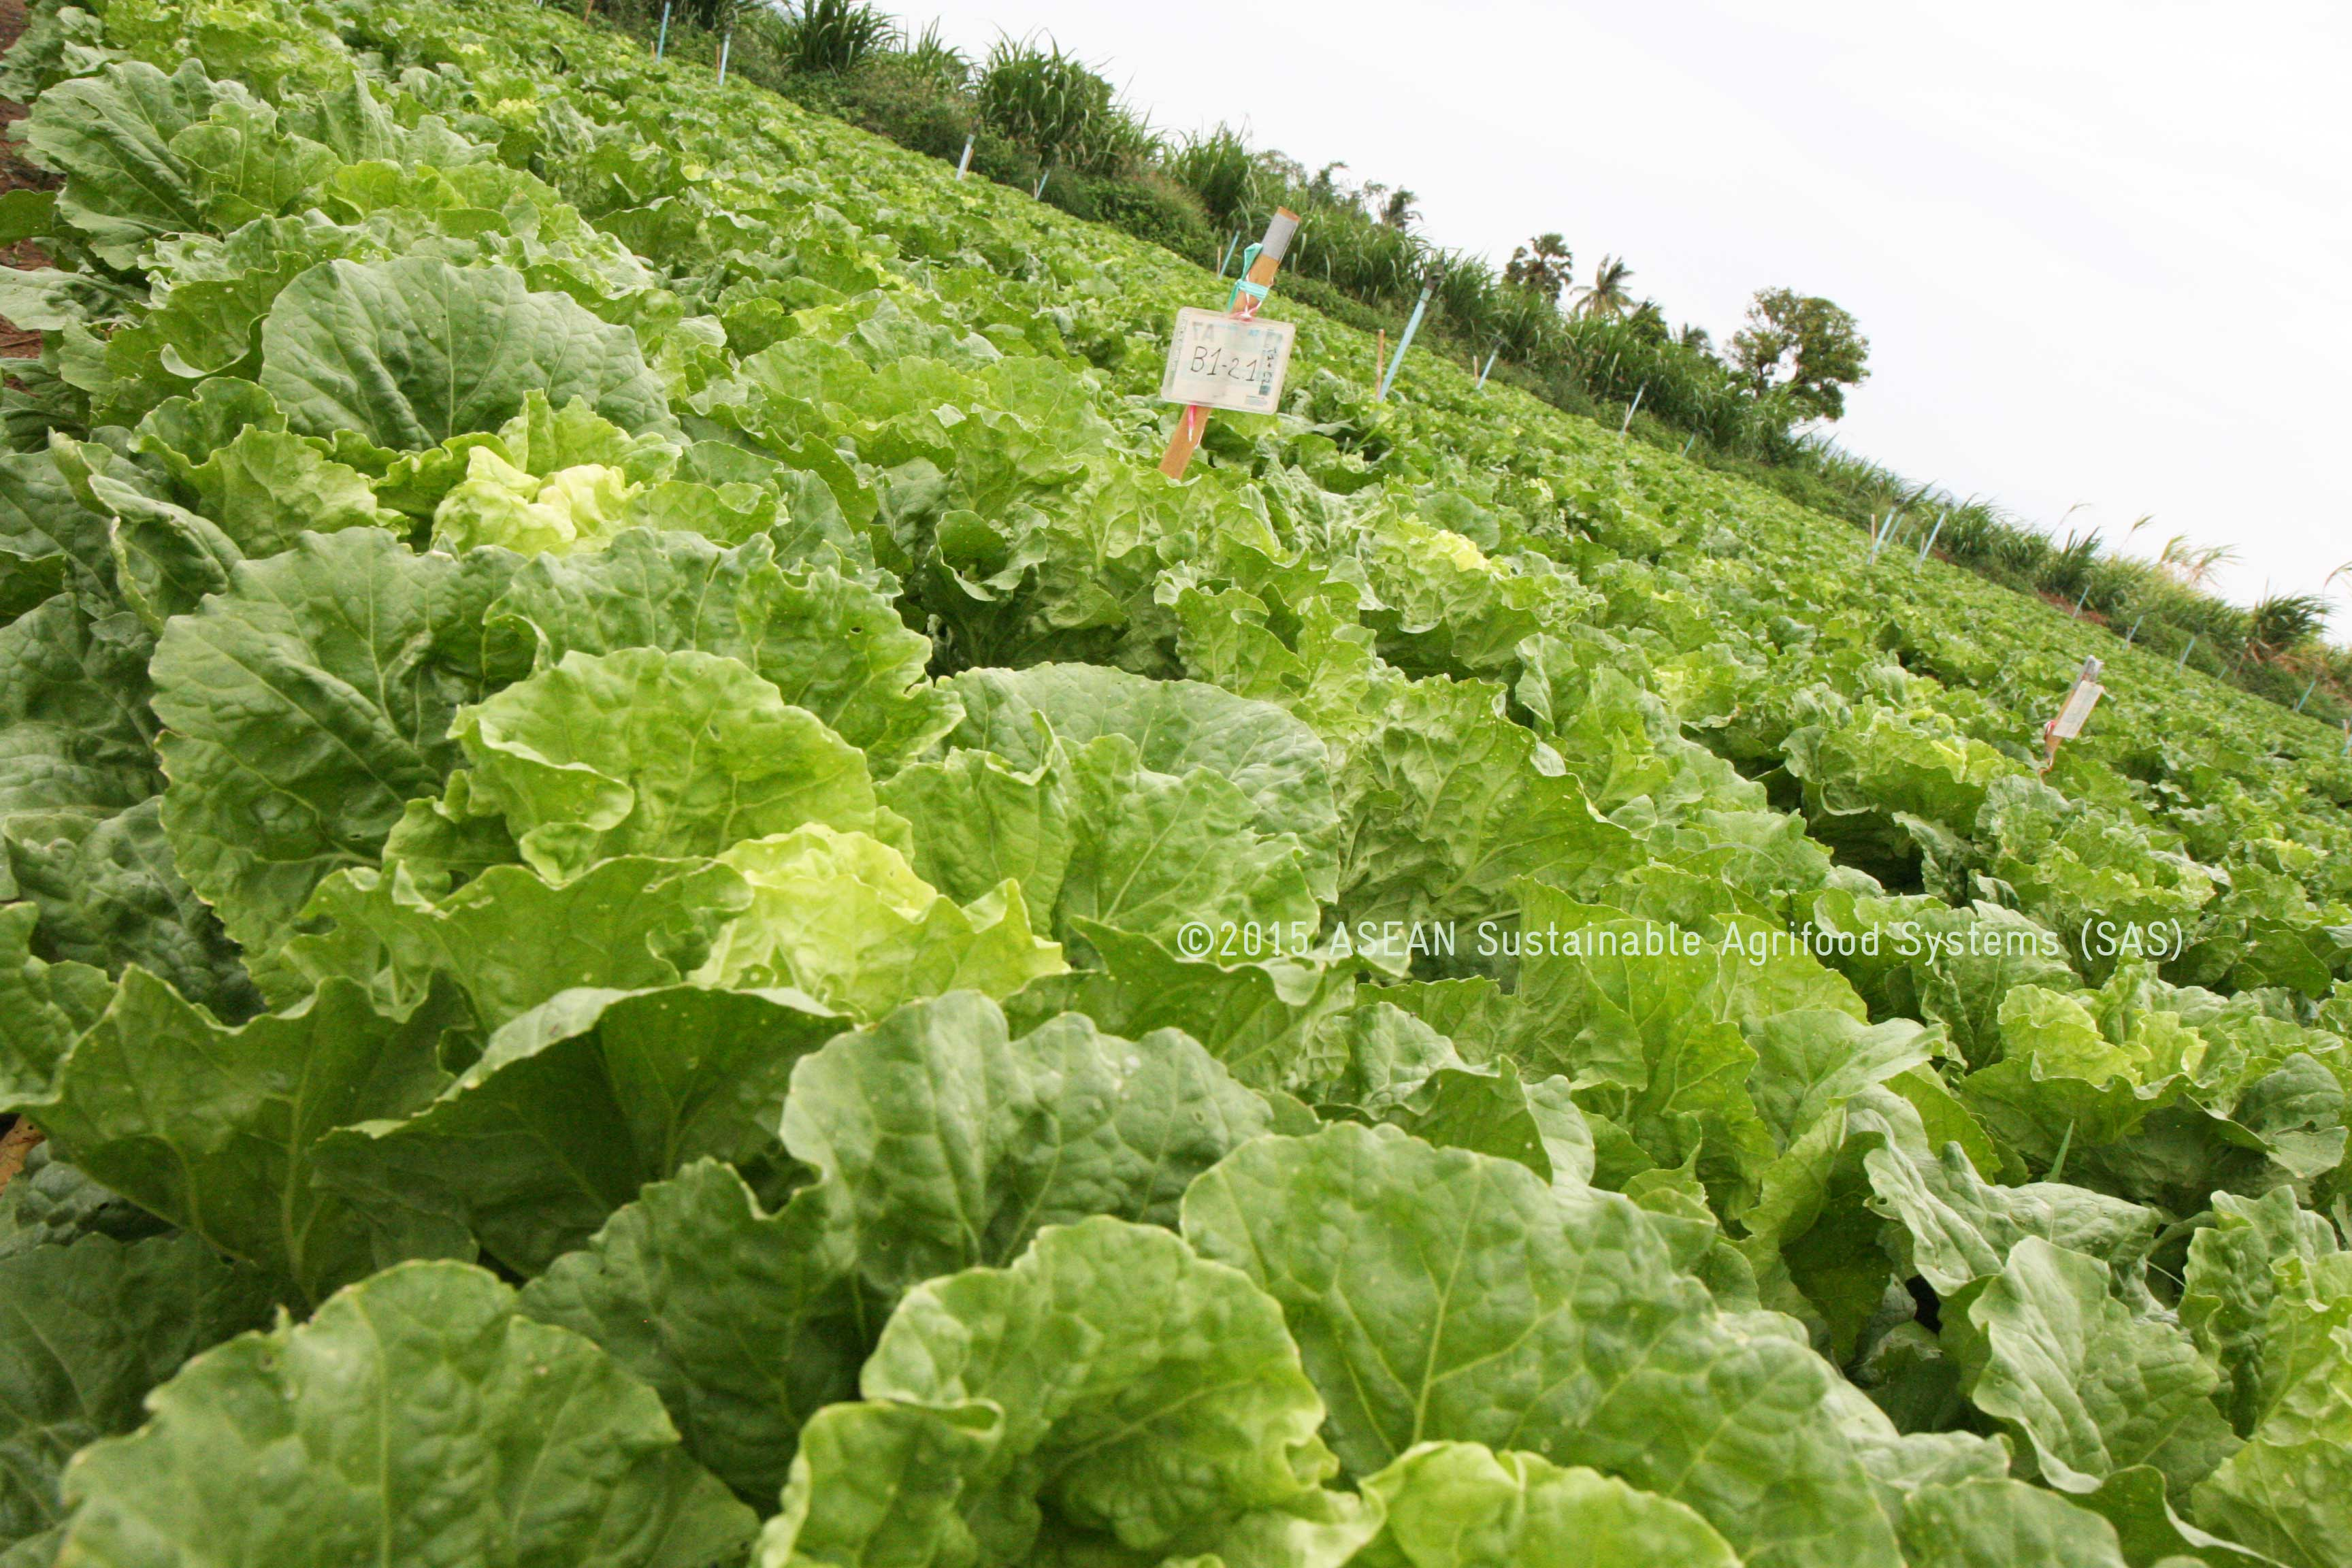 an analysis of the uses of biological pesticides in agriculture One less conventional chemical approach to pest control involves the use of   ipm systems, and sustainable agriculture, can involve use of pesticides, but much   some analyses predict devastation (major crop losses if pesticide use was.